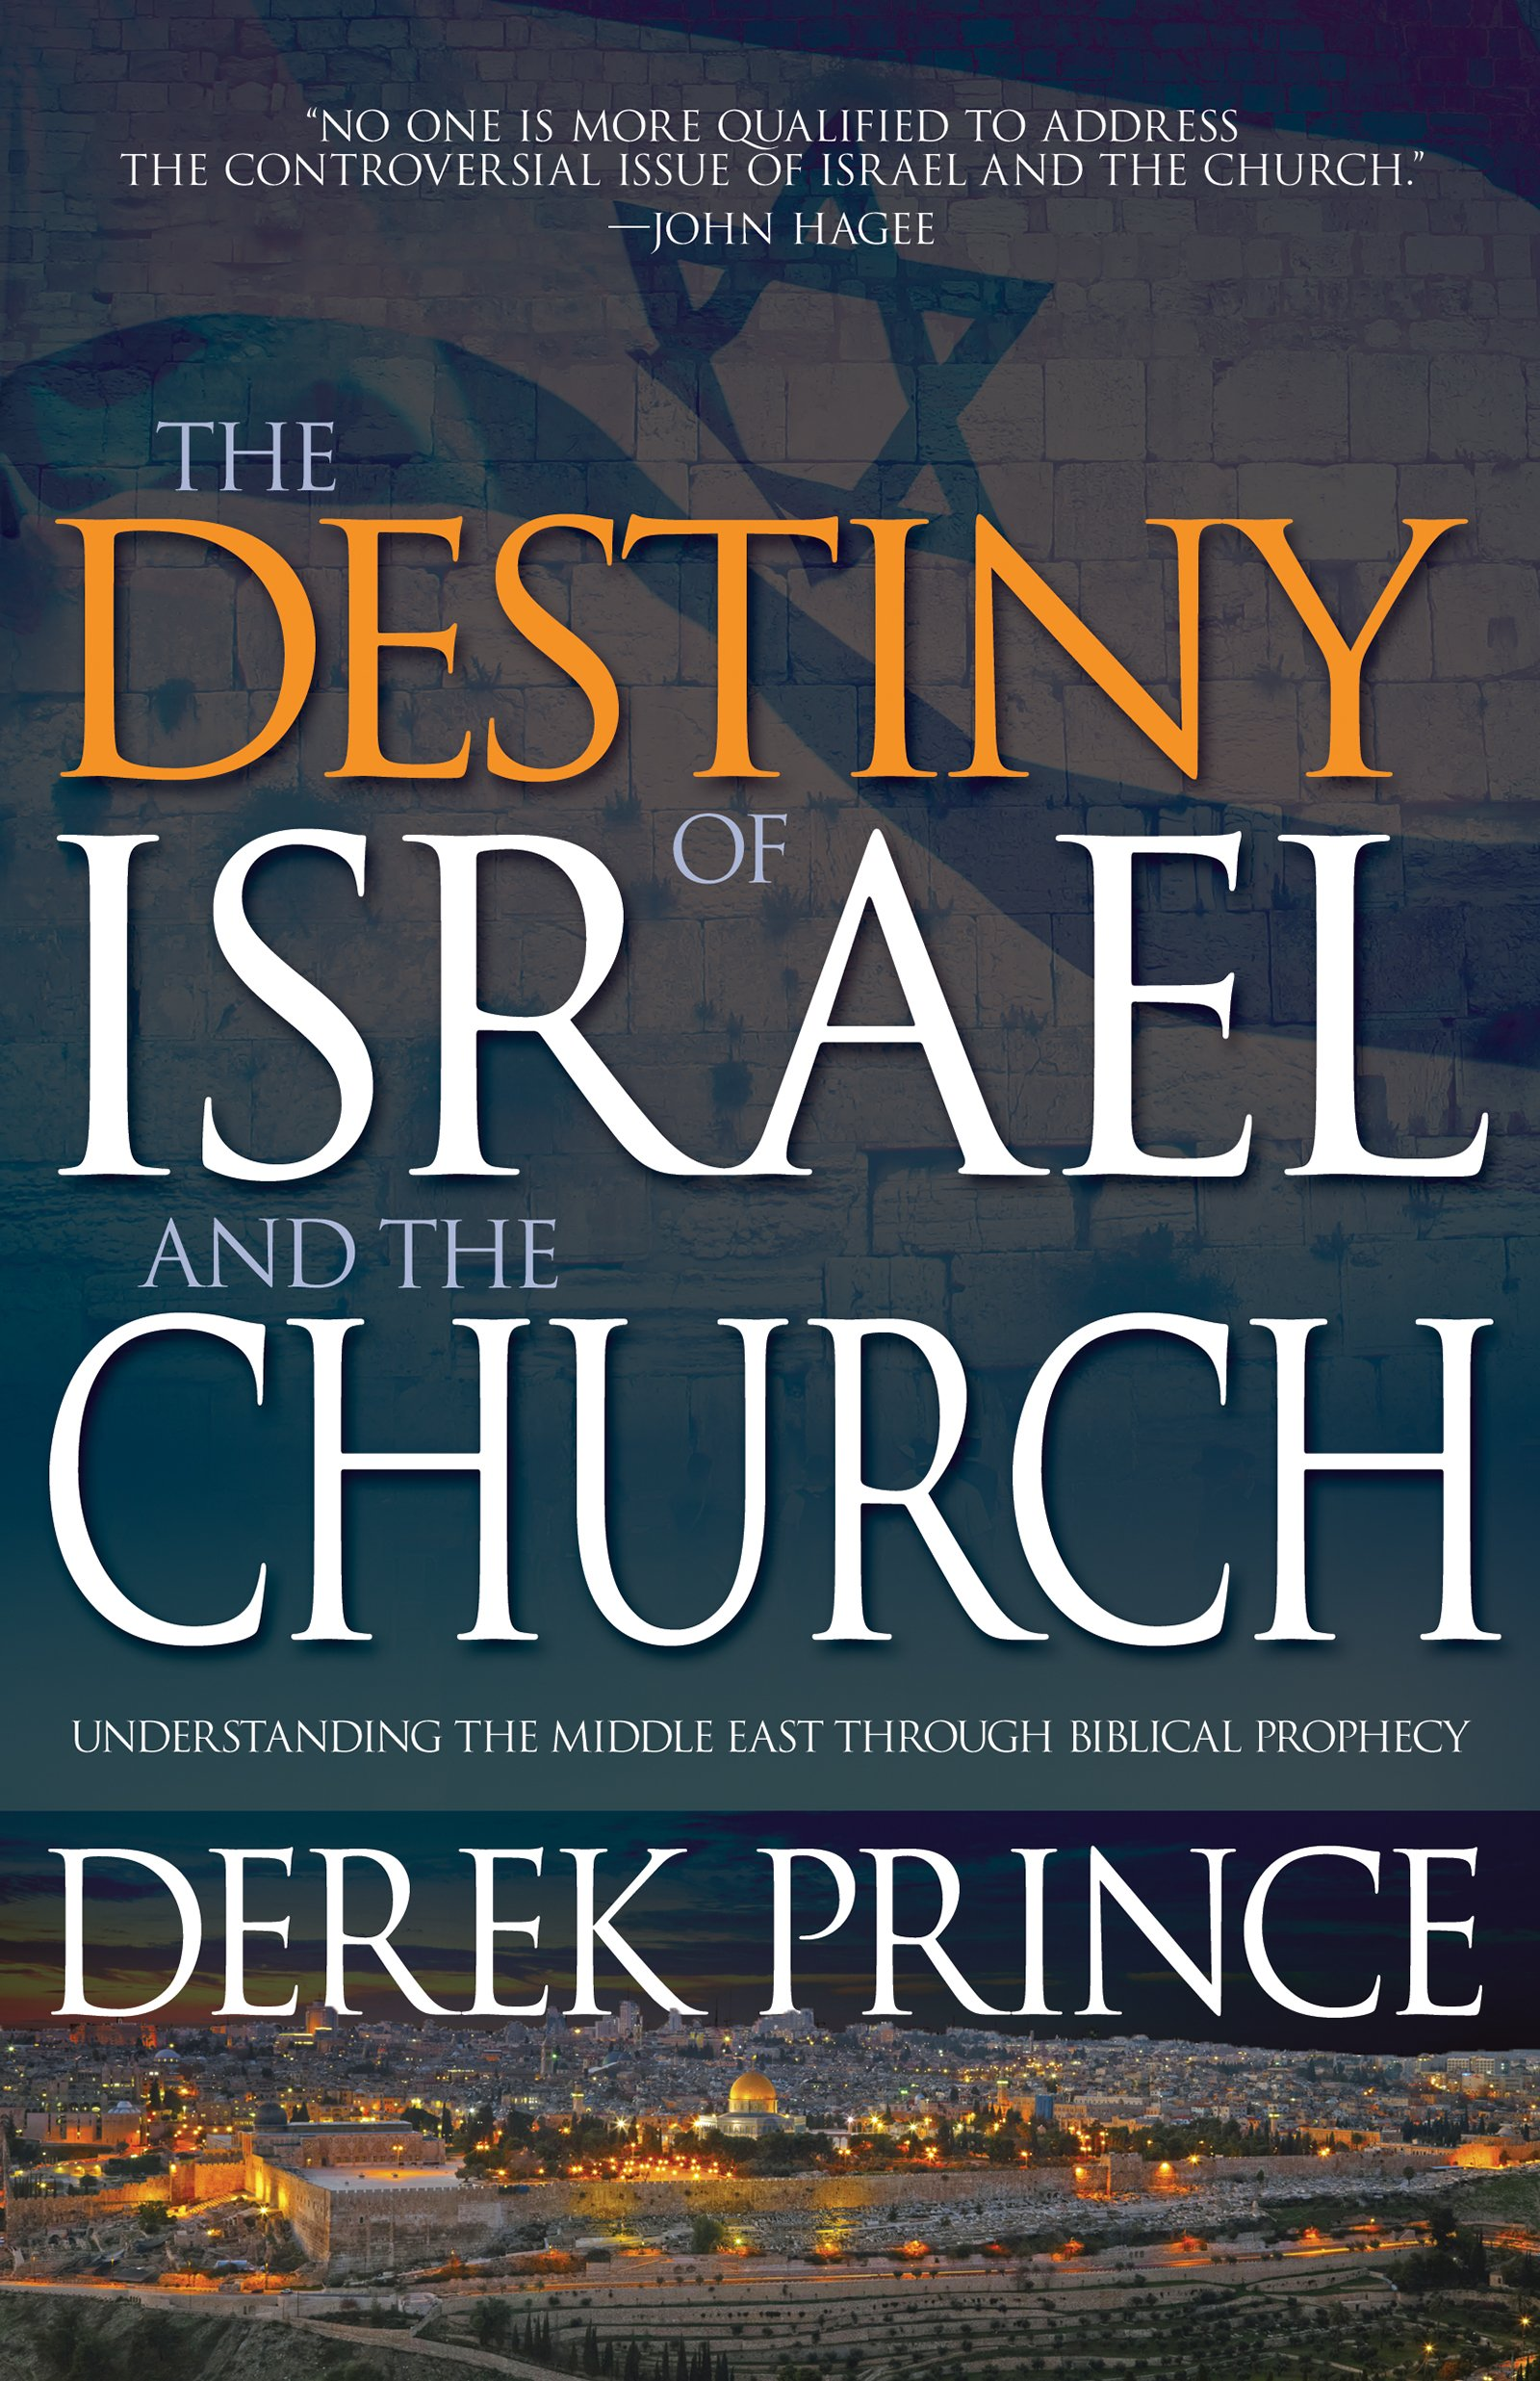 The Destiny of Israel and the Church: Understanding the Middle East Through  Biblical Prophecy: Derek Prince: 9781629117690: Amazon.com: Books